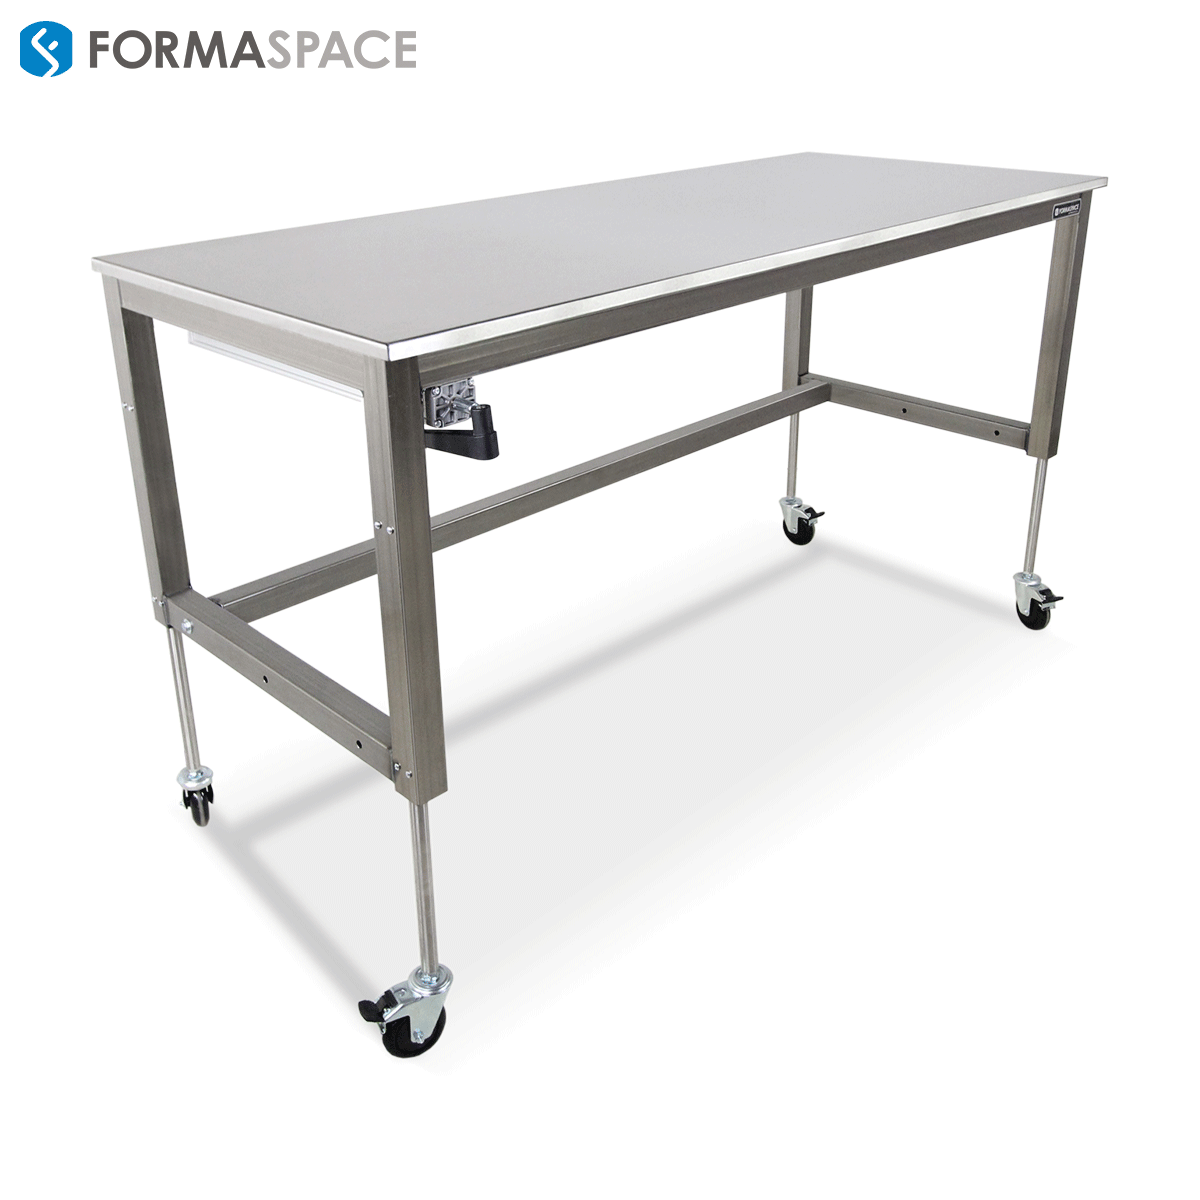 Height Adjustable Laboratory Basix Bench Formaspace Modify Our Basix Workbench With Hydraulics To Create An Ergonomic Height Adjustable Workbench Bench